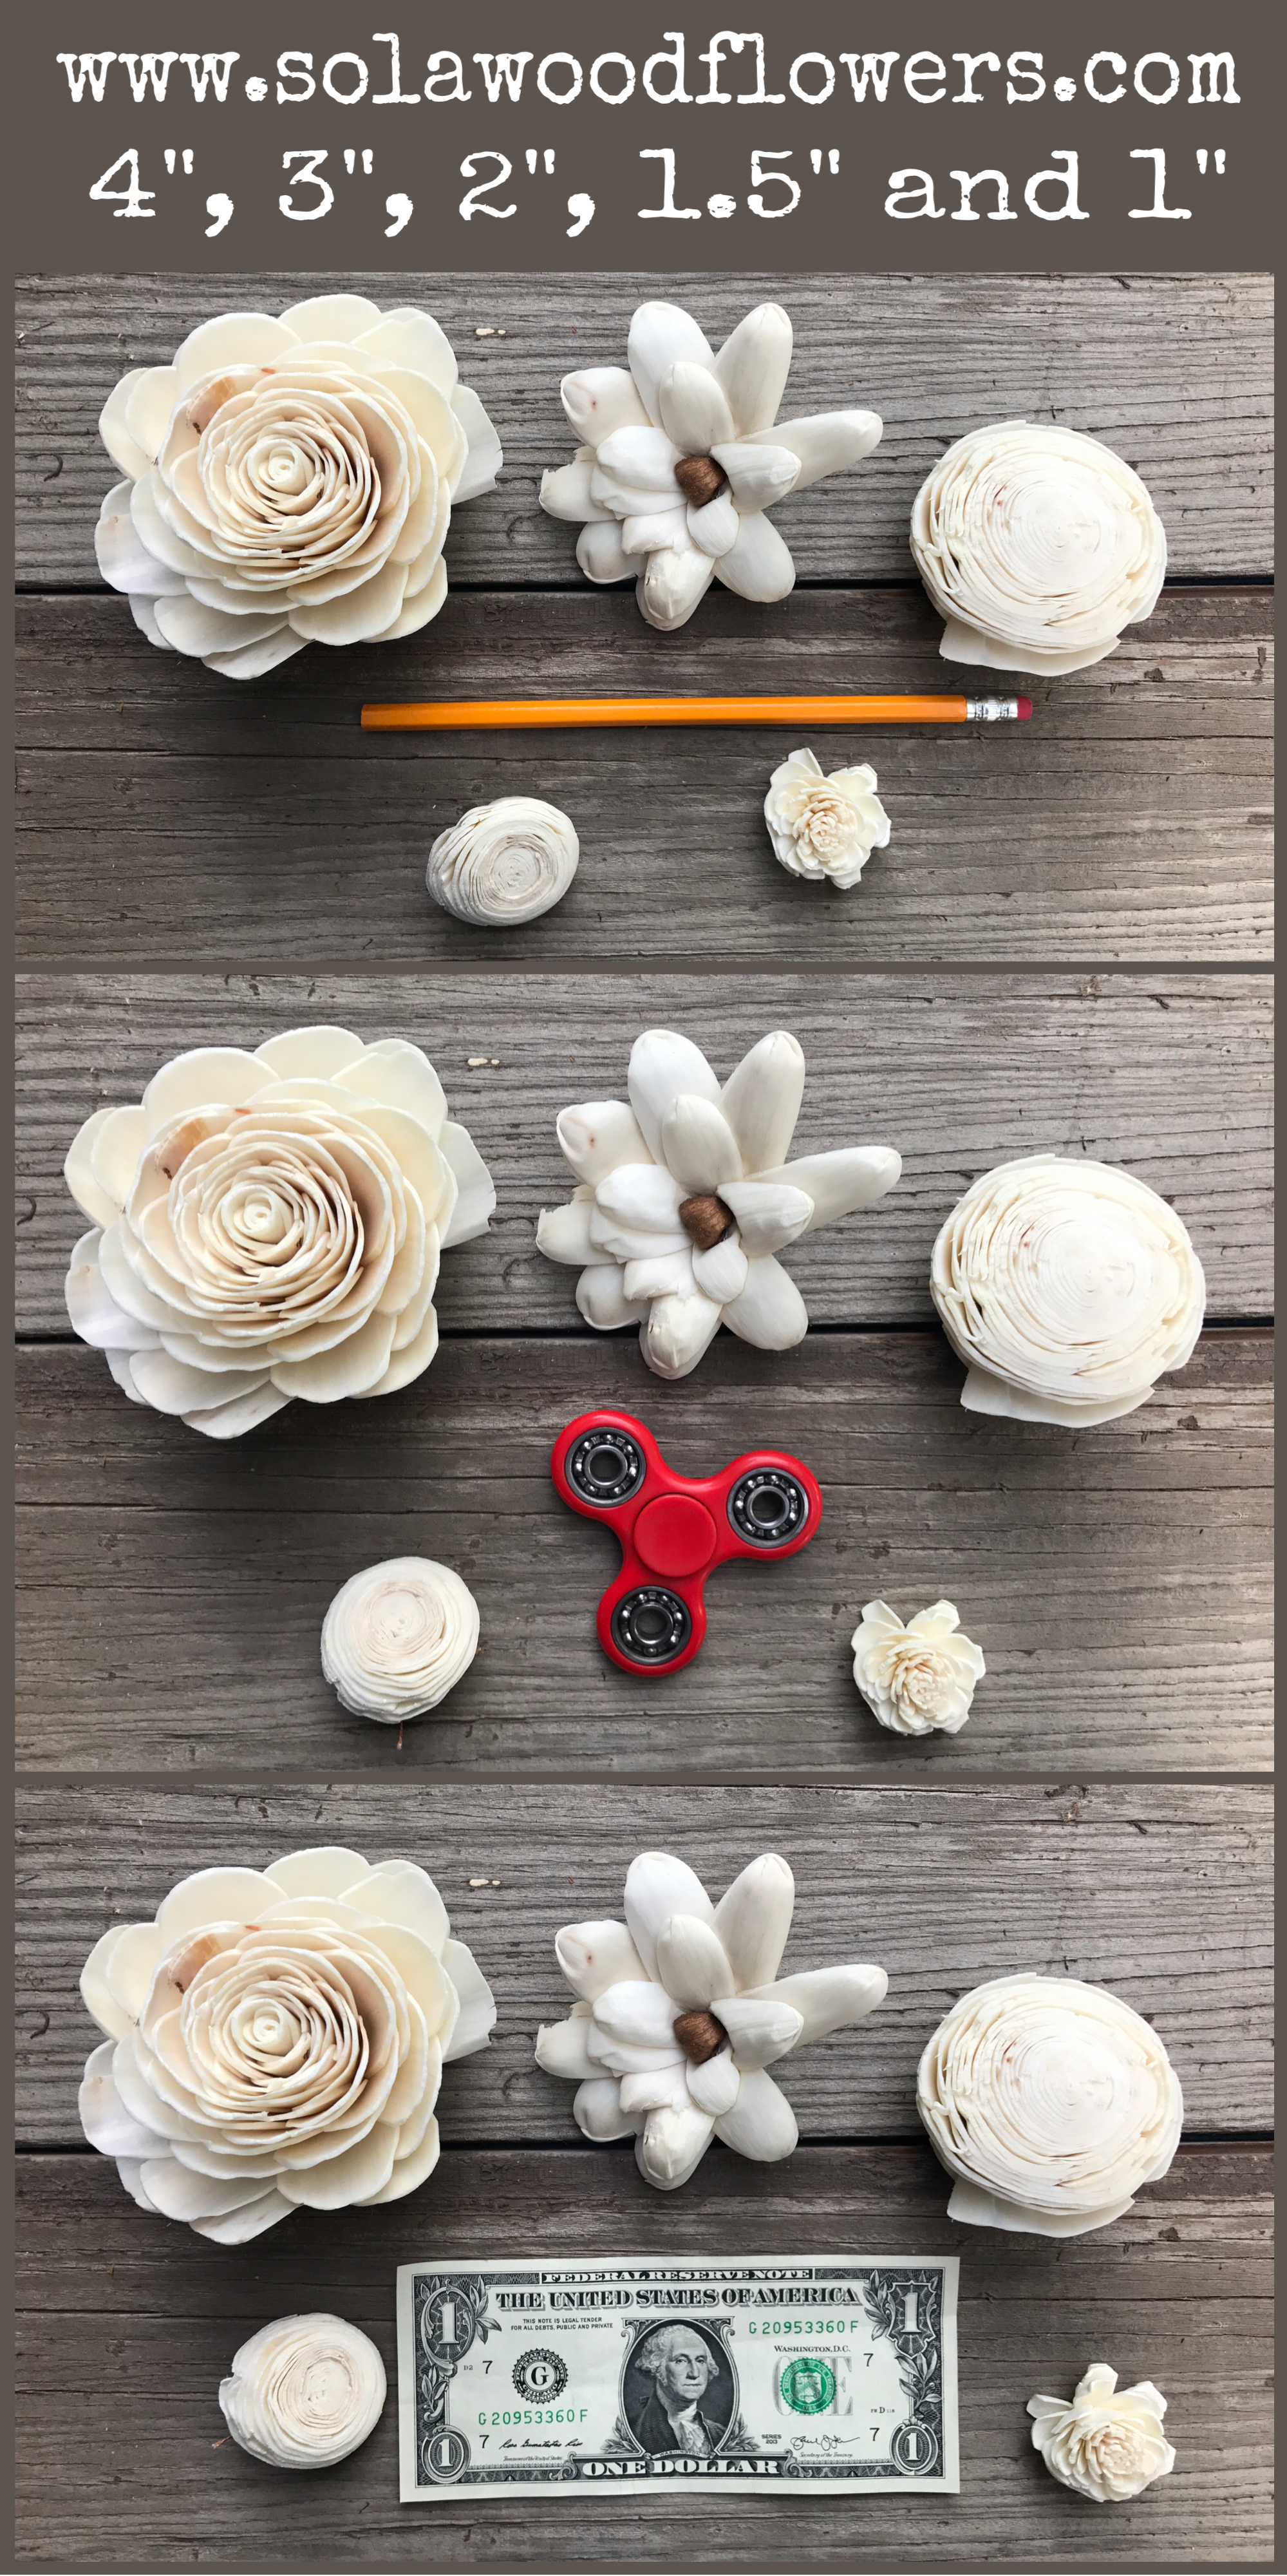 1 To 4 Wood Flower Sizes Compared To A Dollar Bill A Fidget Spinner And A No 2 Pencil Wood Flowers Sola Wood Flowers Paper Flowers